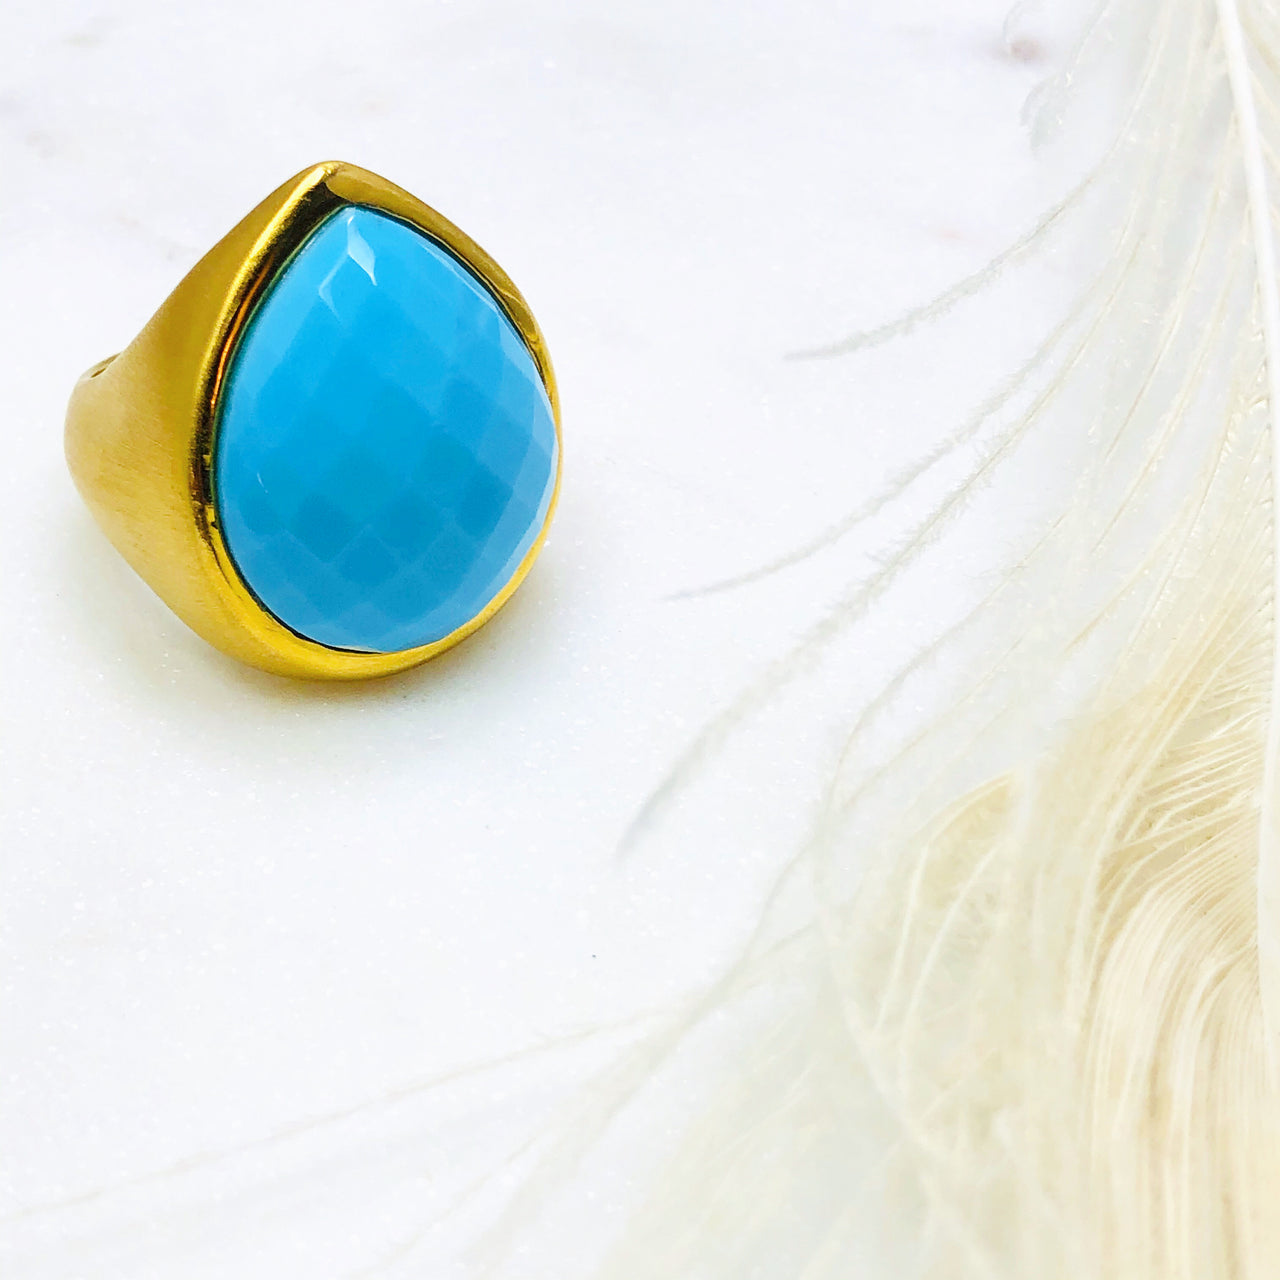 22k Gold Plated Turquoise Ring.